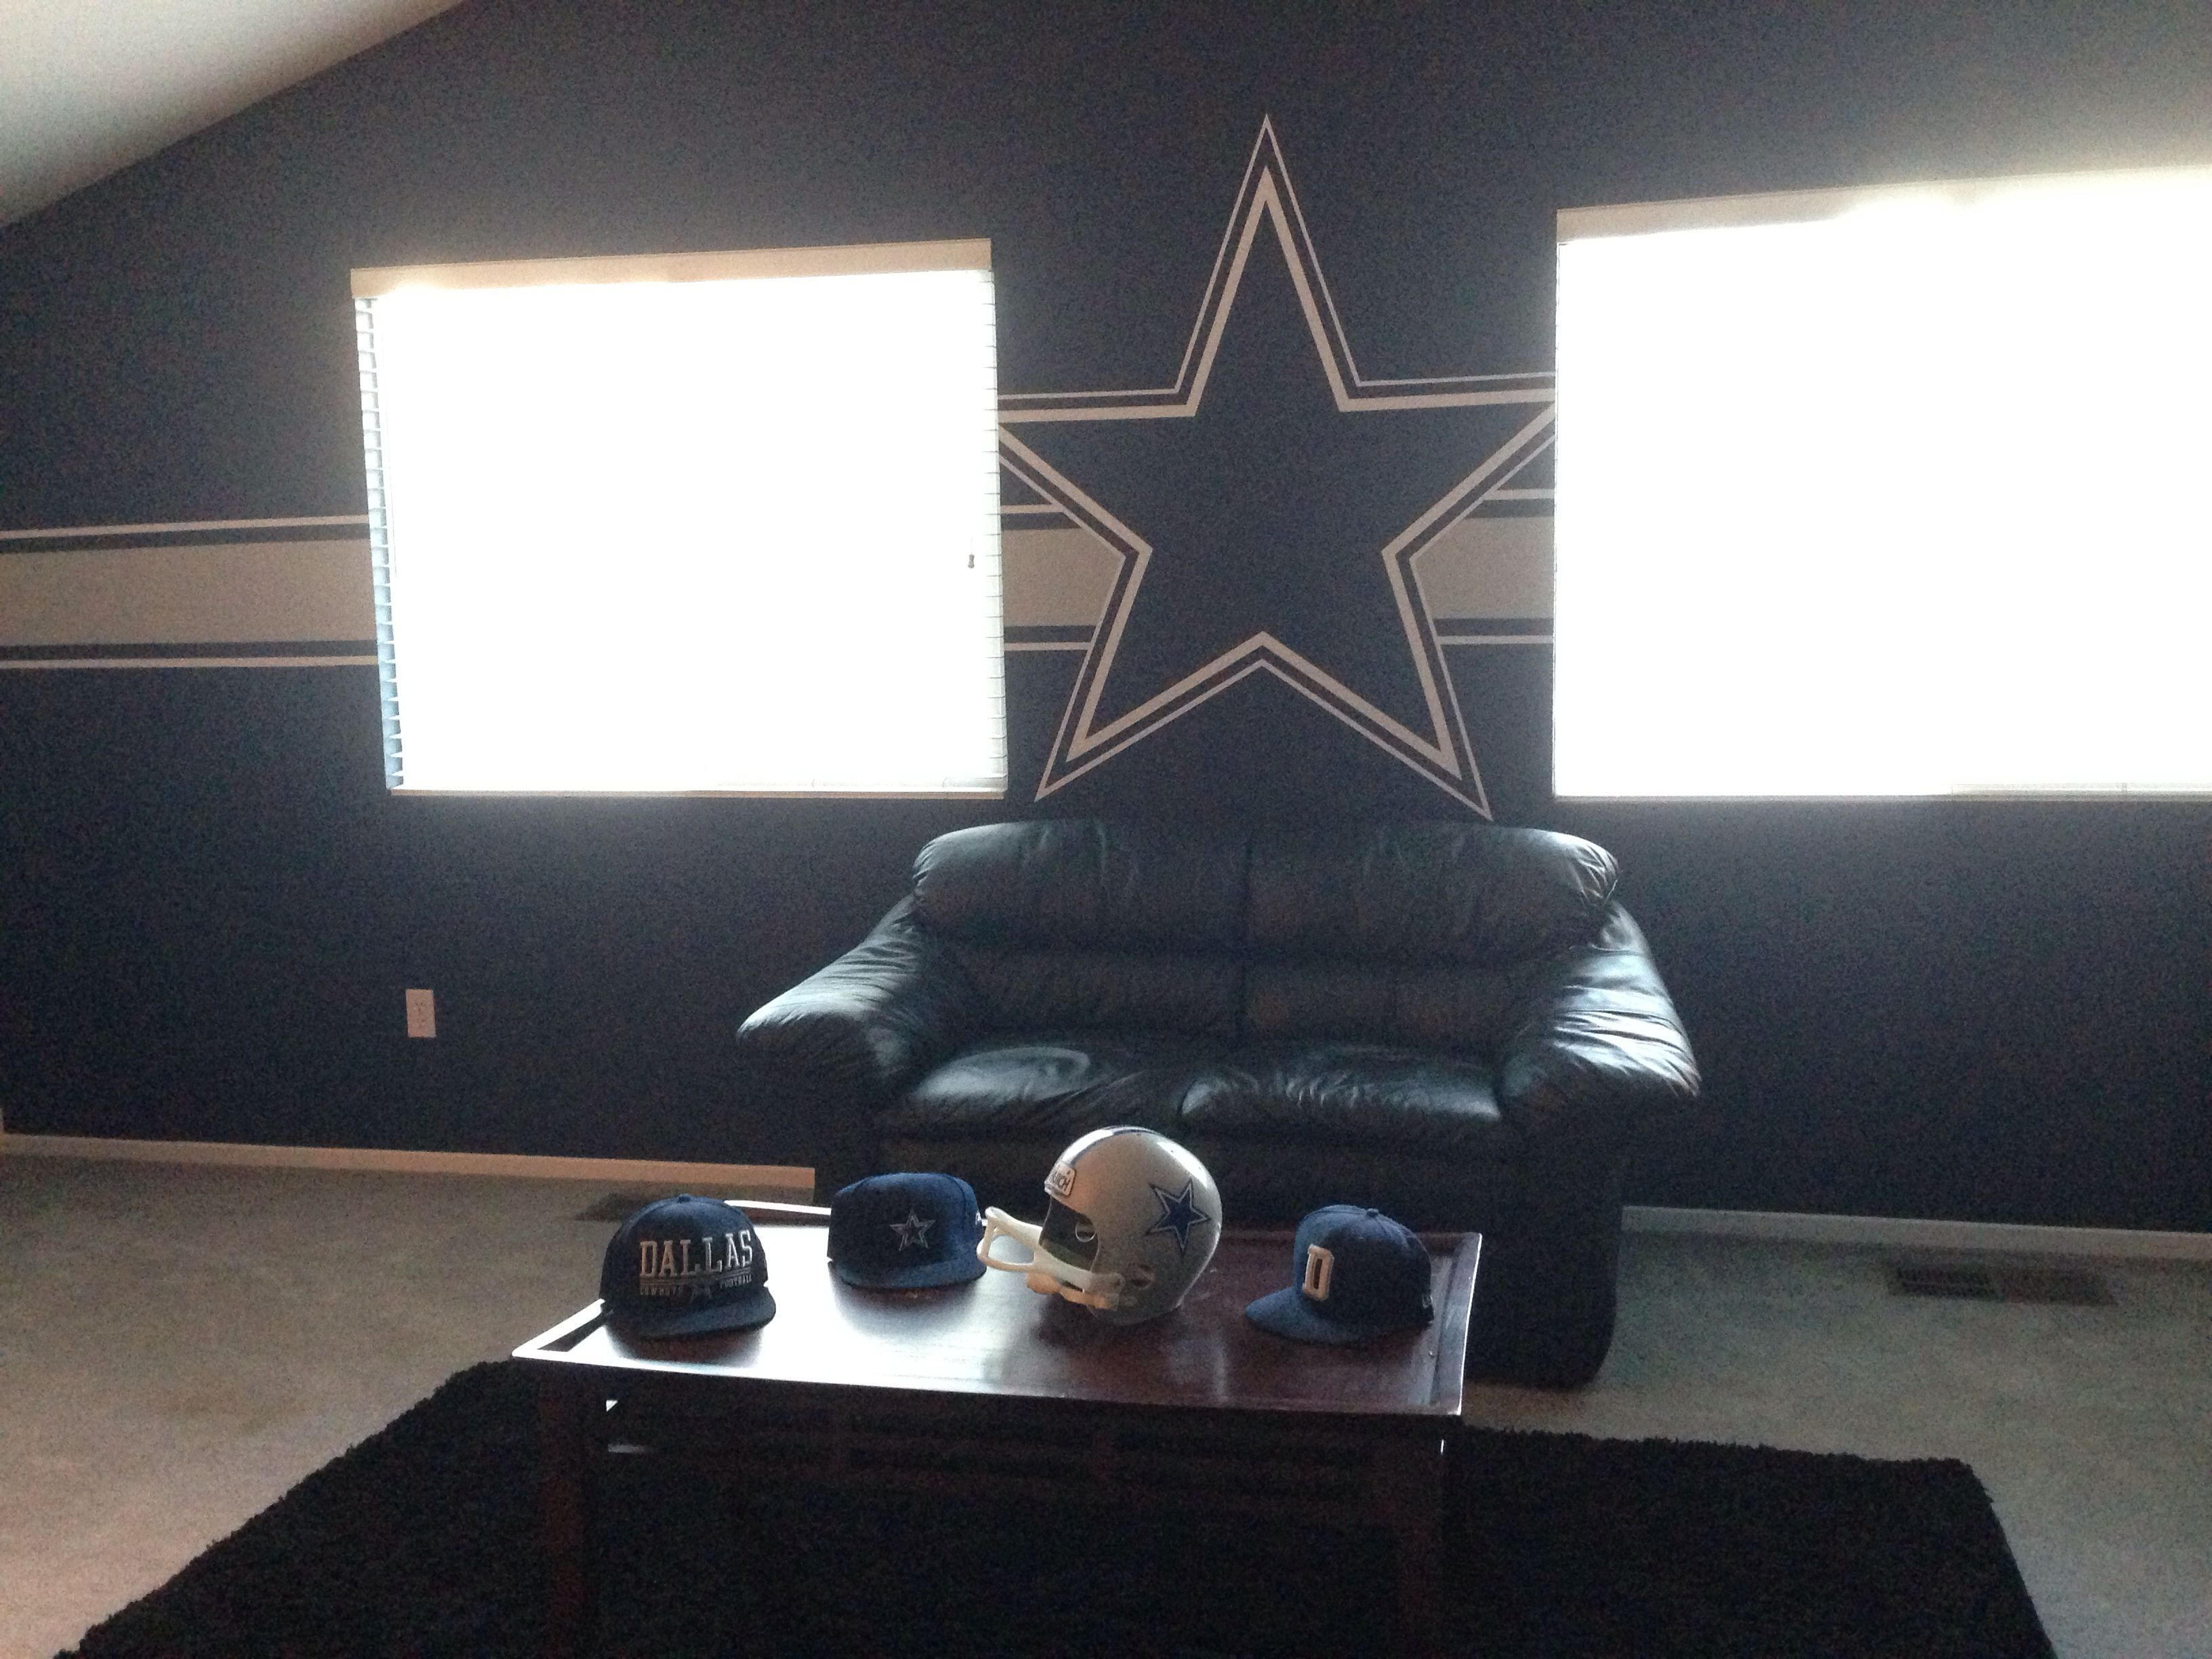 Dallas Cowboys Wall Decor dallas cowboy man cave | paint jobs | pinterest | cowboys men, men